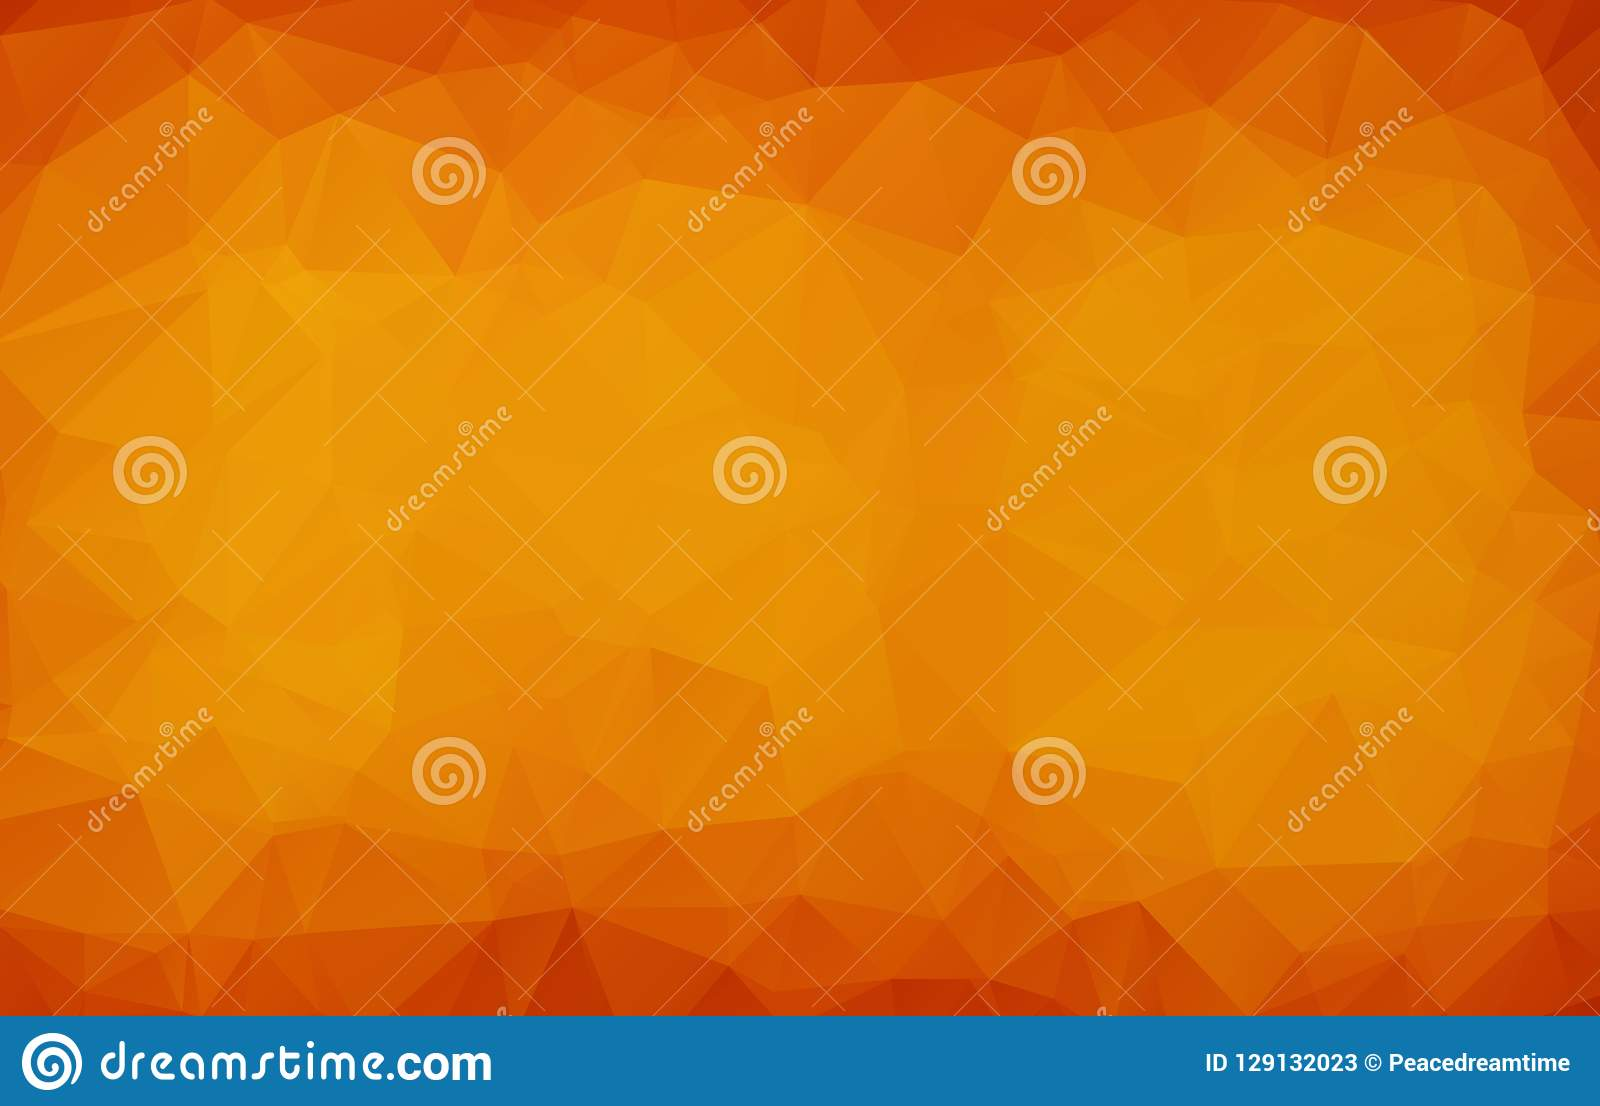 Abstract Dark orange polygonal illustration, which consist of triangles. Geometric background in Origami style with gradient. Tria